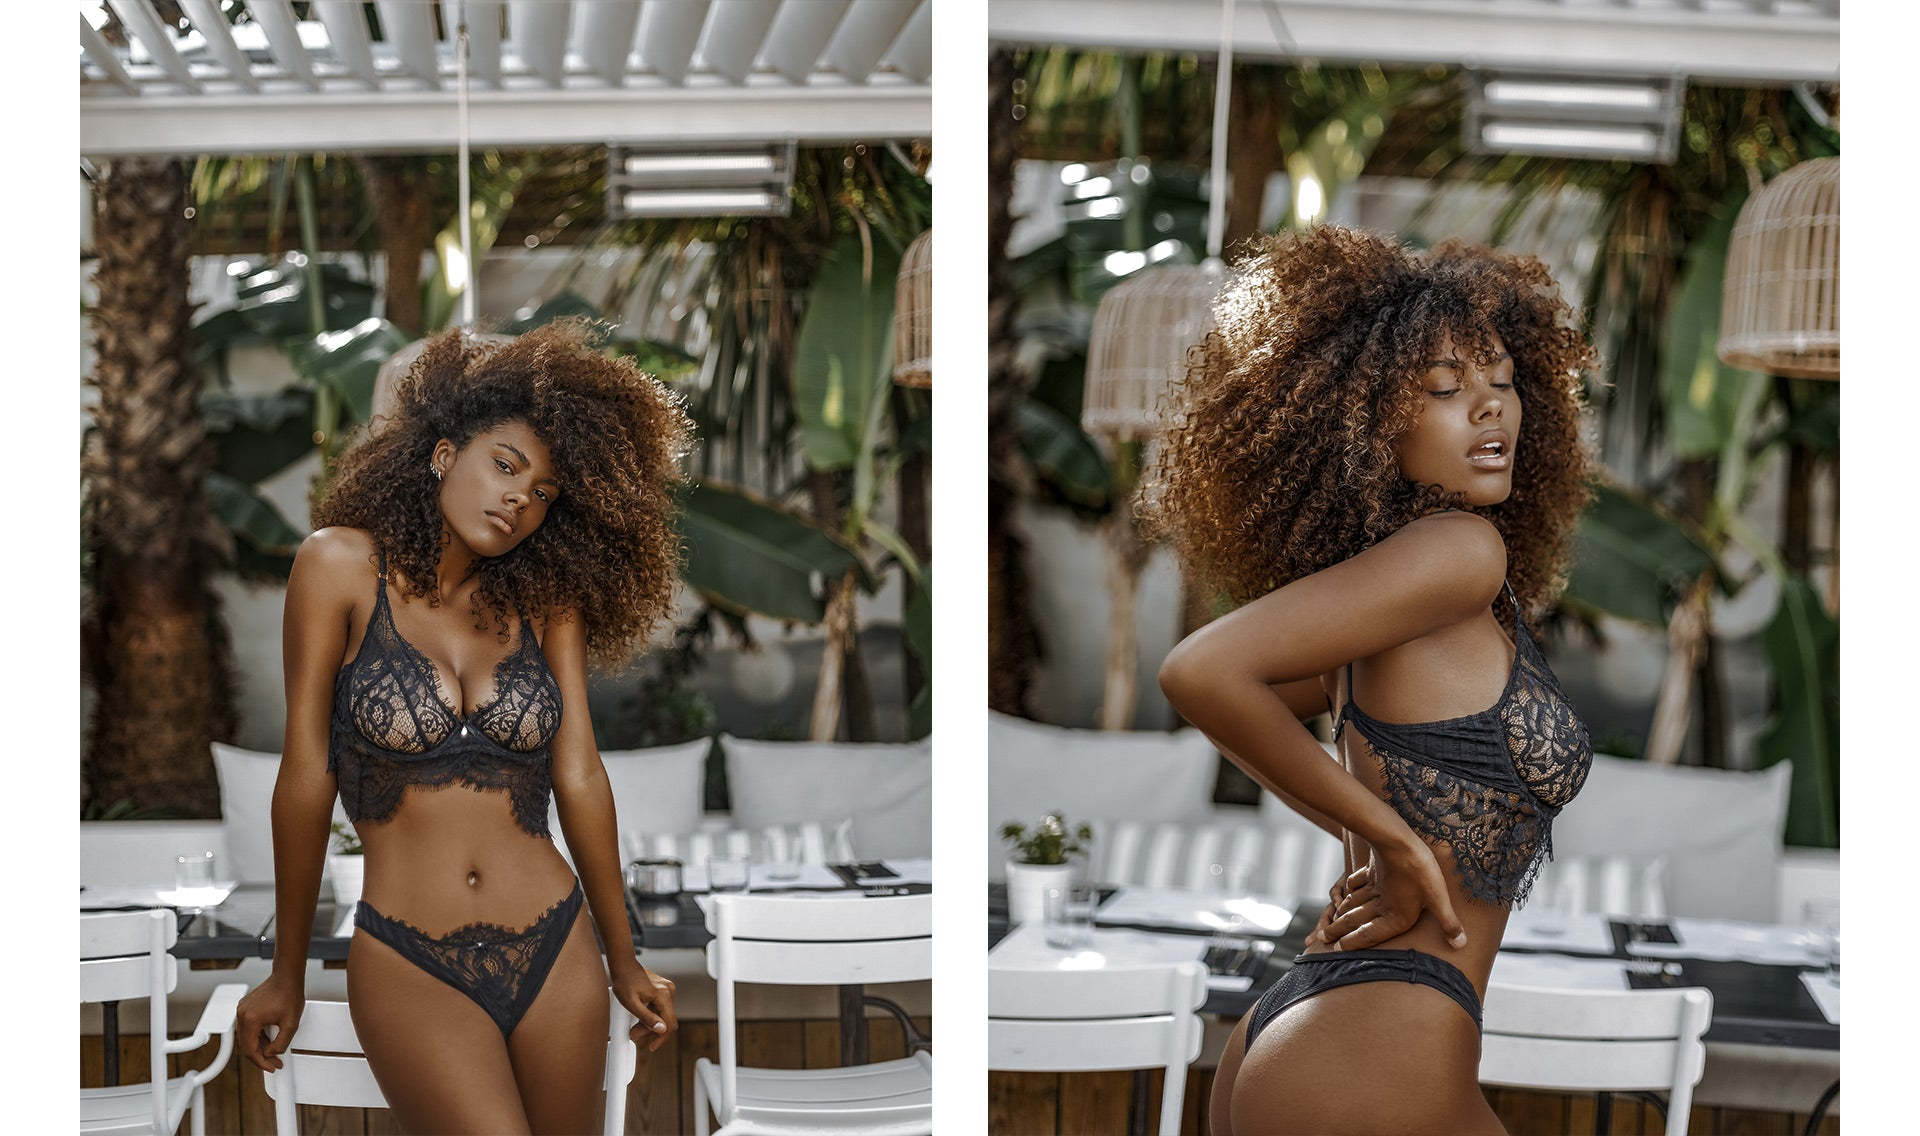 Dual photos of Tina Kunakey posing in the Bliss Black Lingerie Set